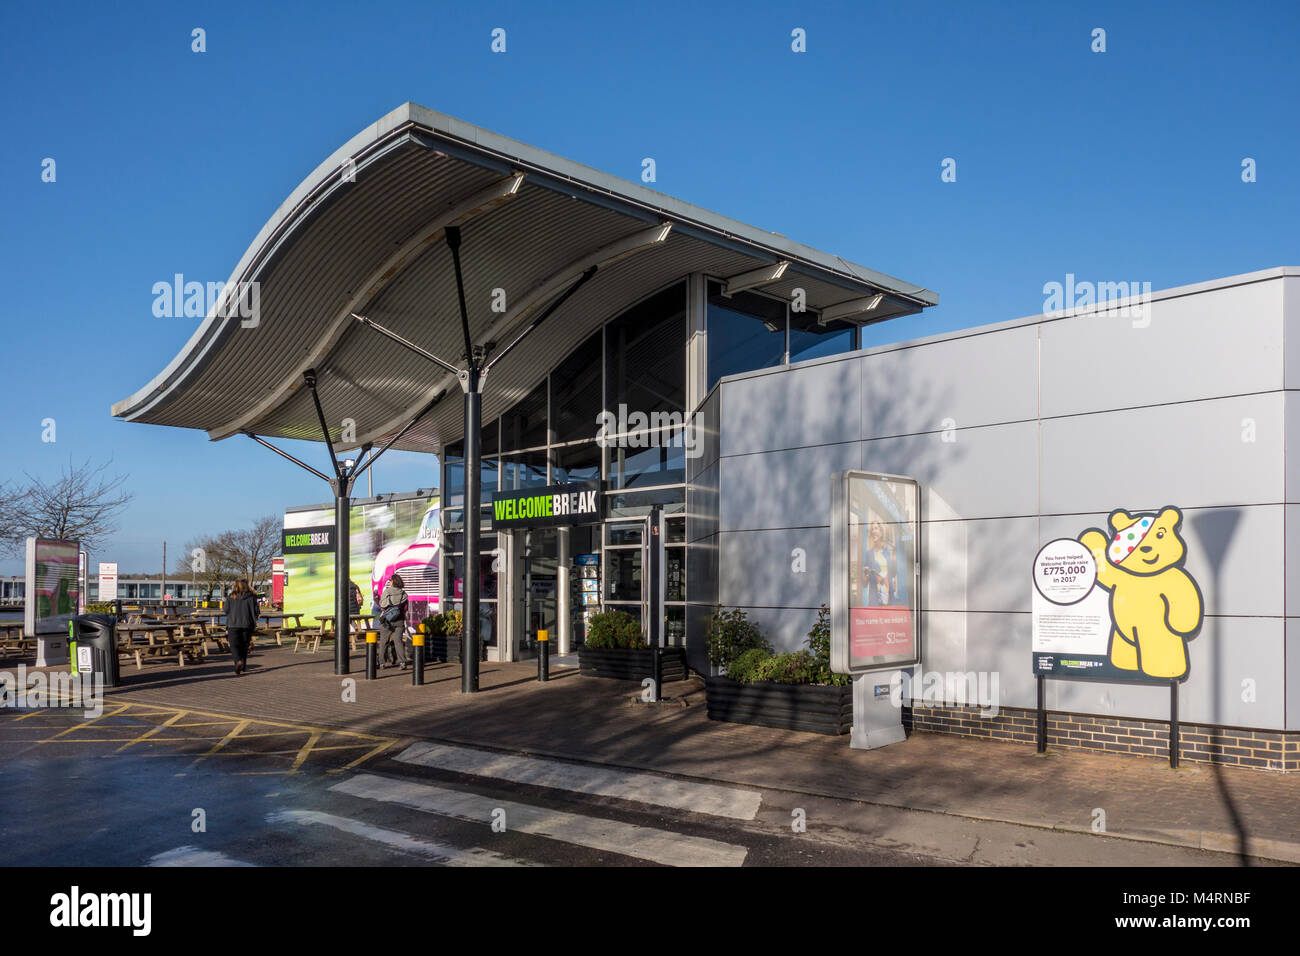 Welcome Break motorway services on the M1 Newport Pagnell, UK - Stock Image